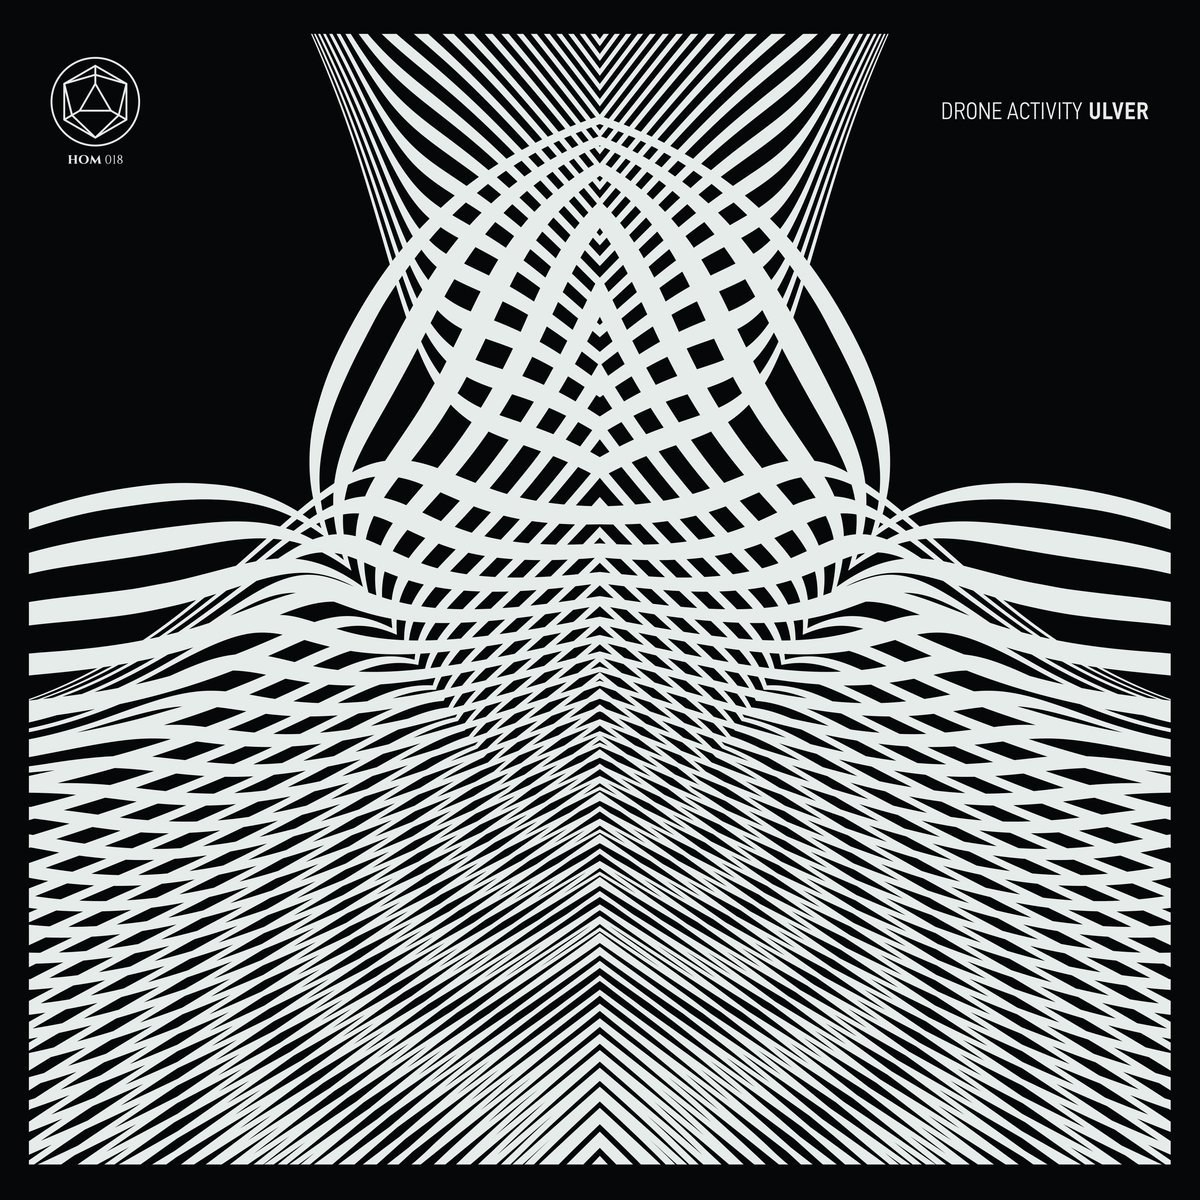 Review for Ulver - Drone Activity